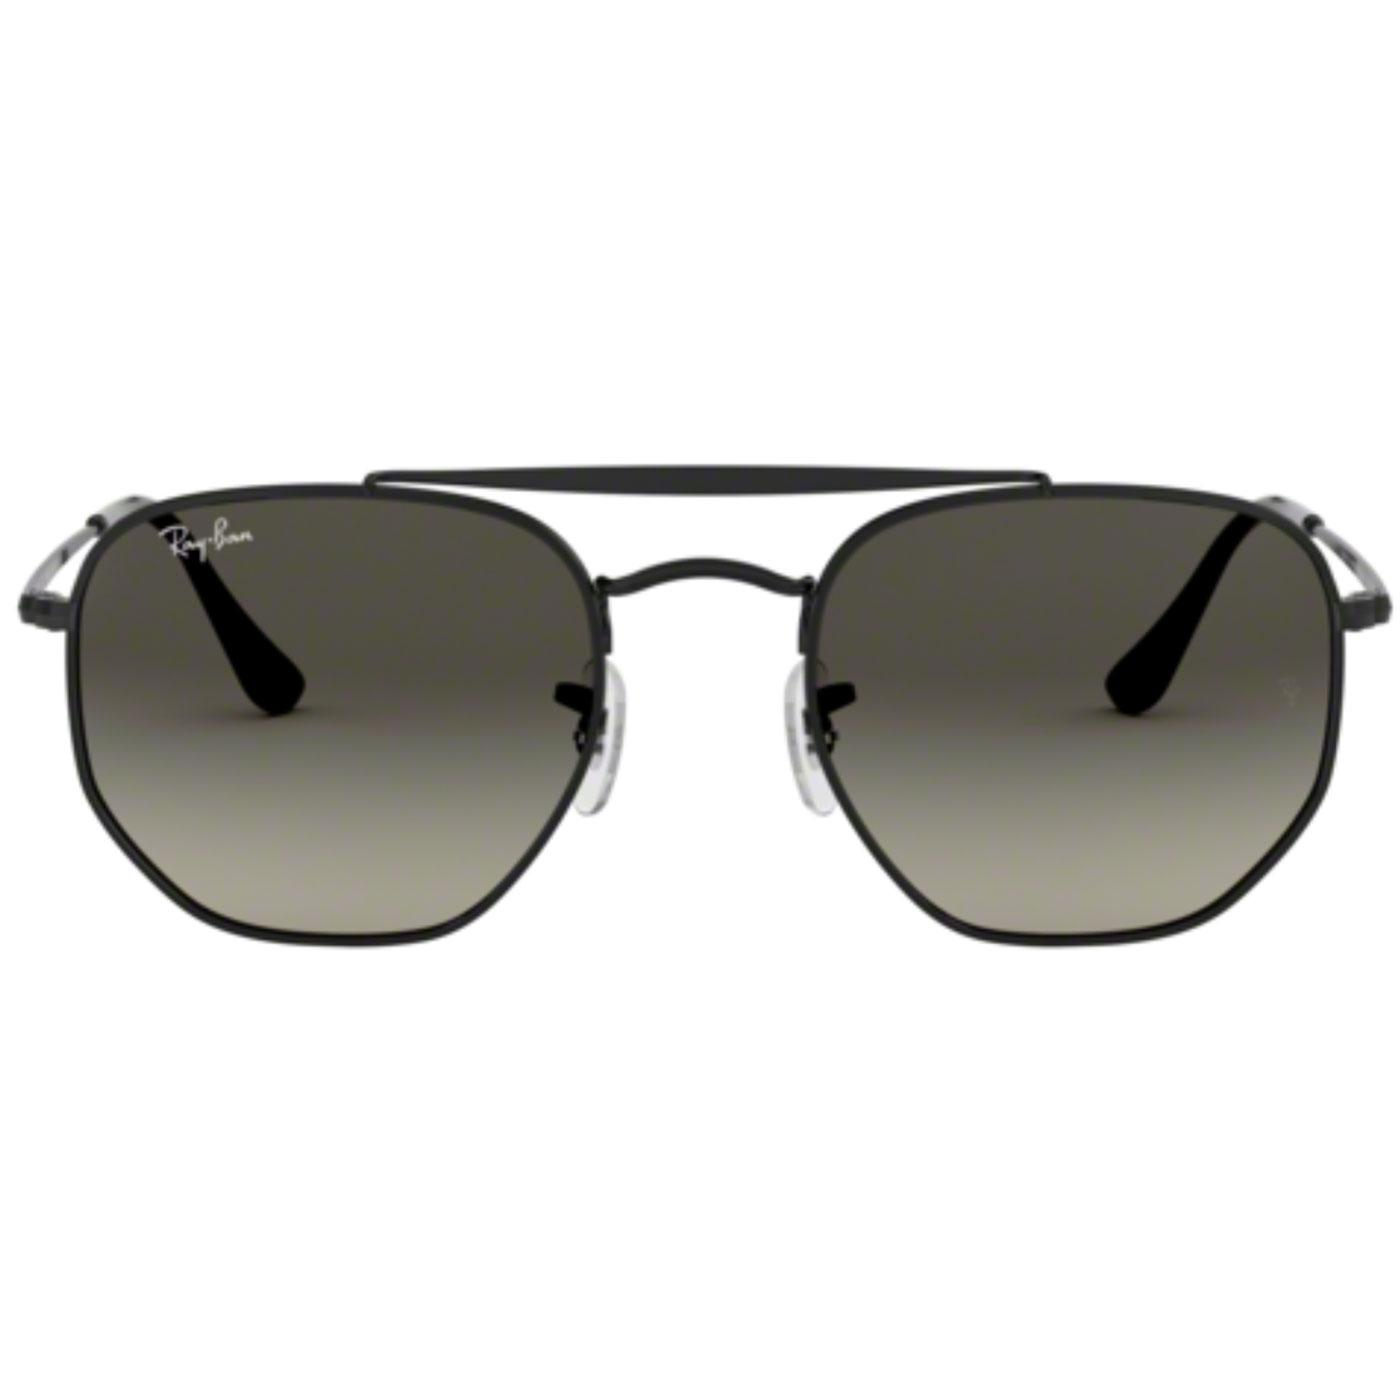 The Marshal RAY-BAN Retro 70s Aviator Sunglasses